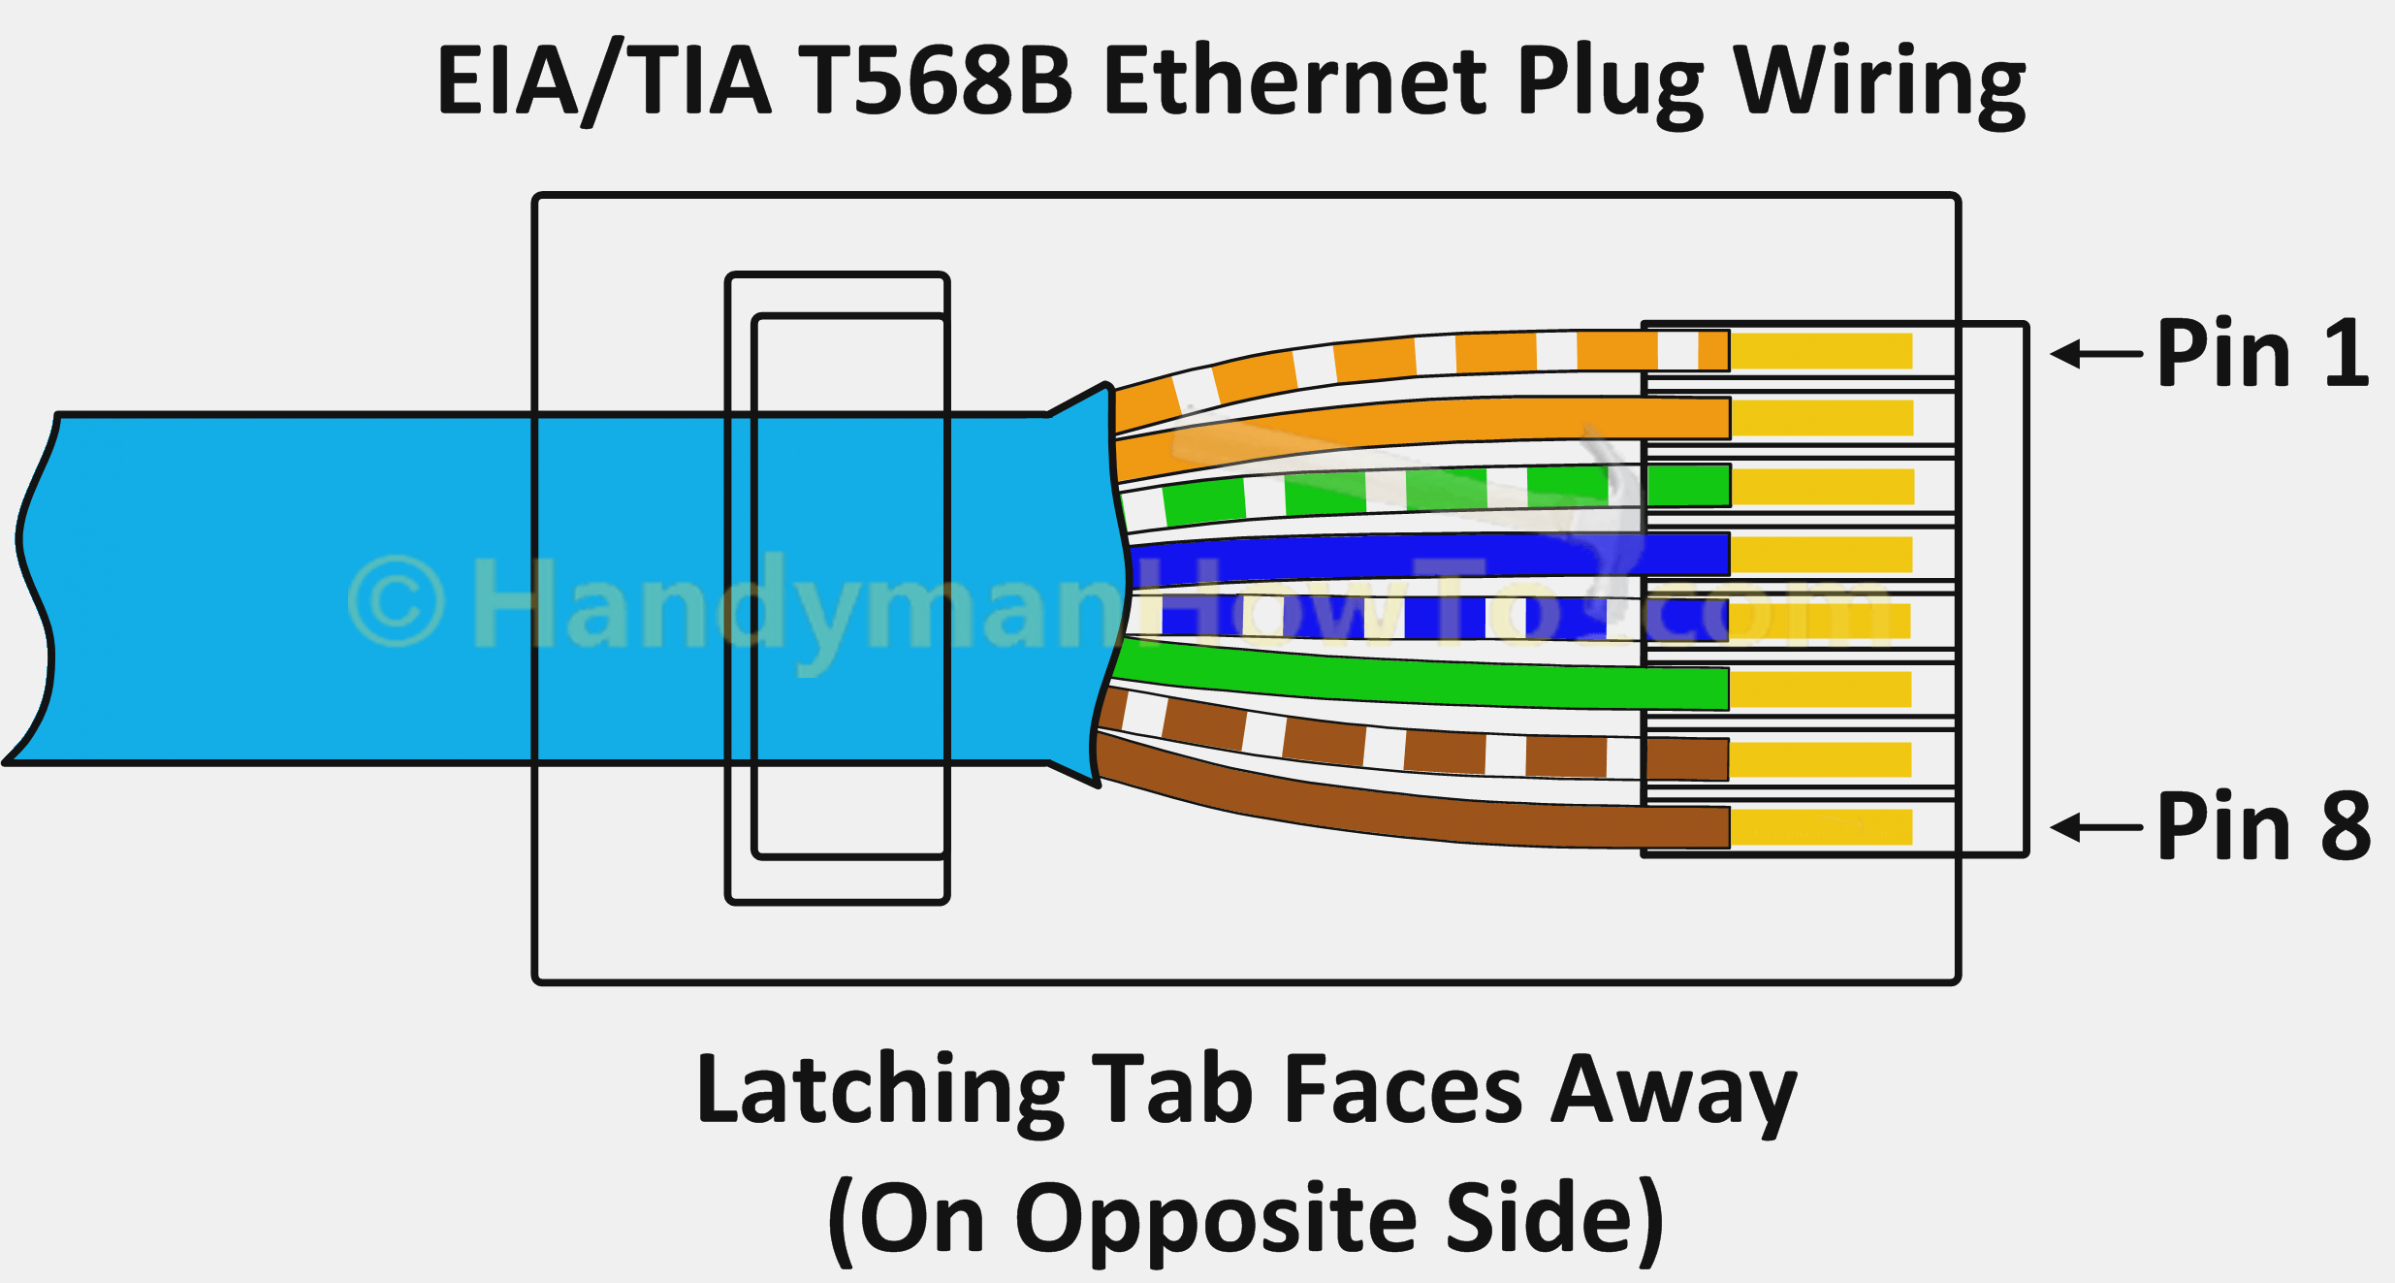 Rj45 Wiring Female Diagram - Electrical Schematic Wiring Diagram • - Wiring Diagram For Female Usb To Male Ethernet Adapter